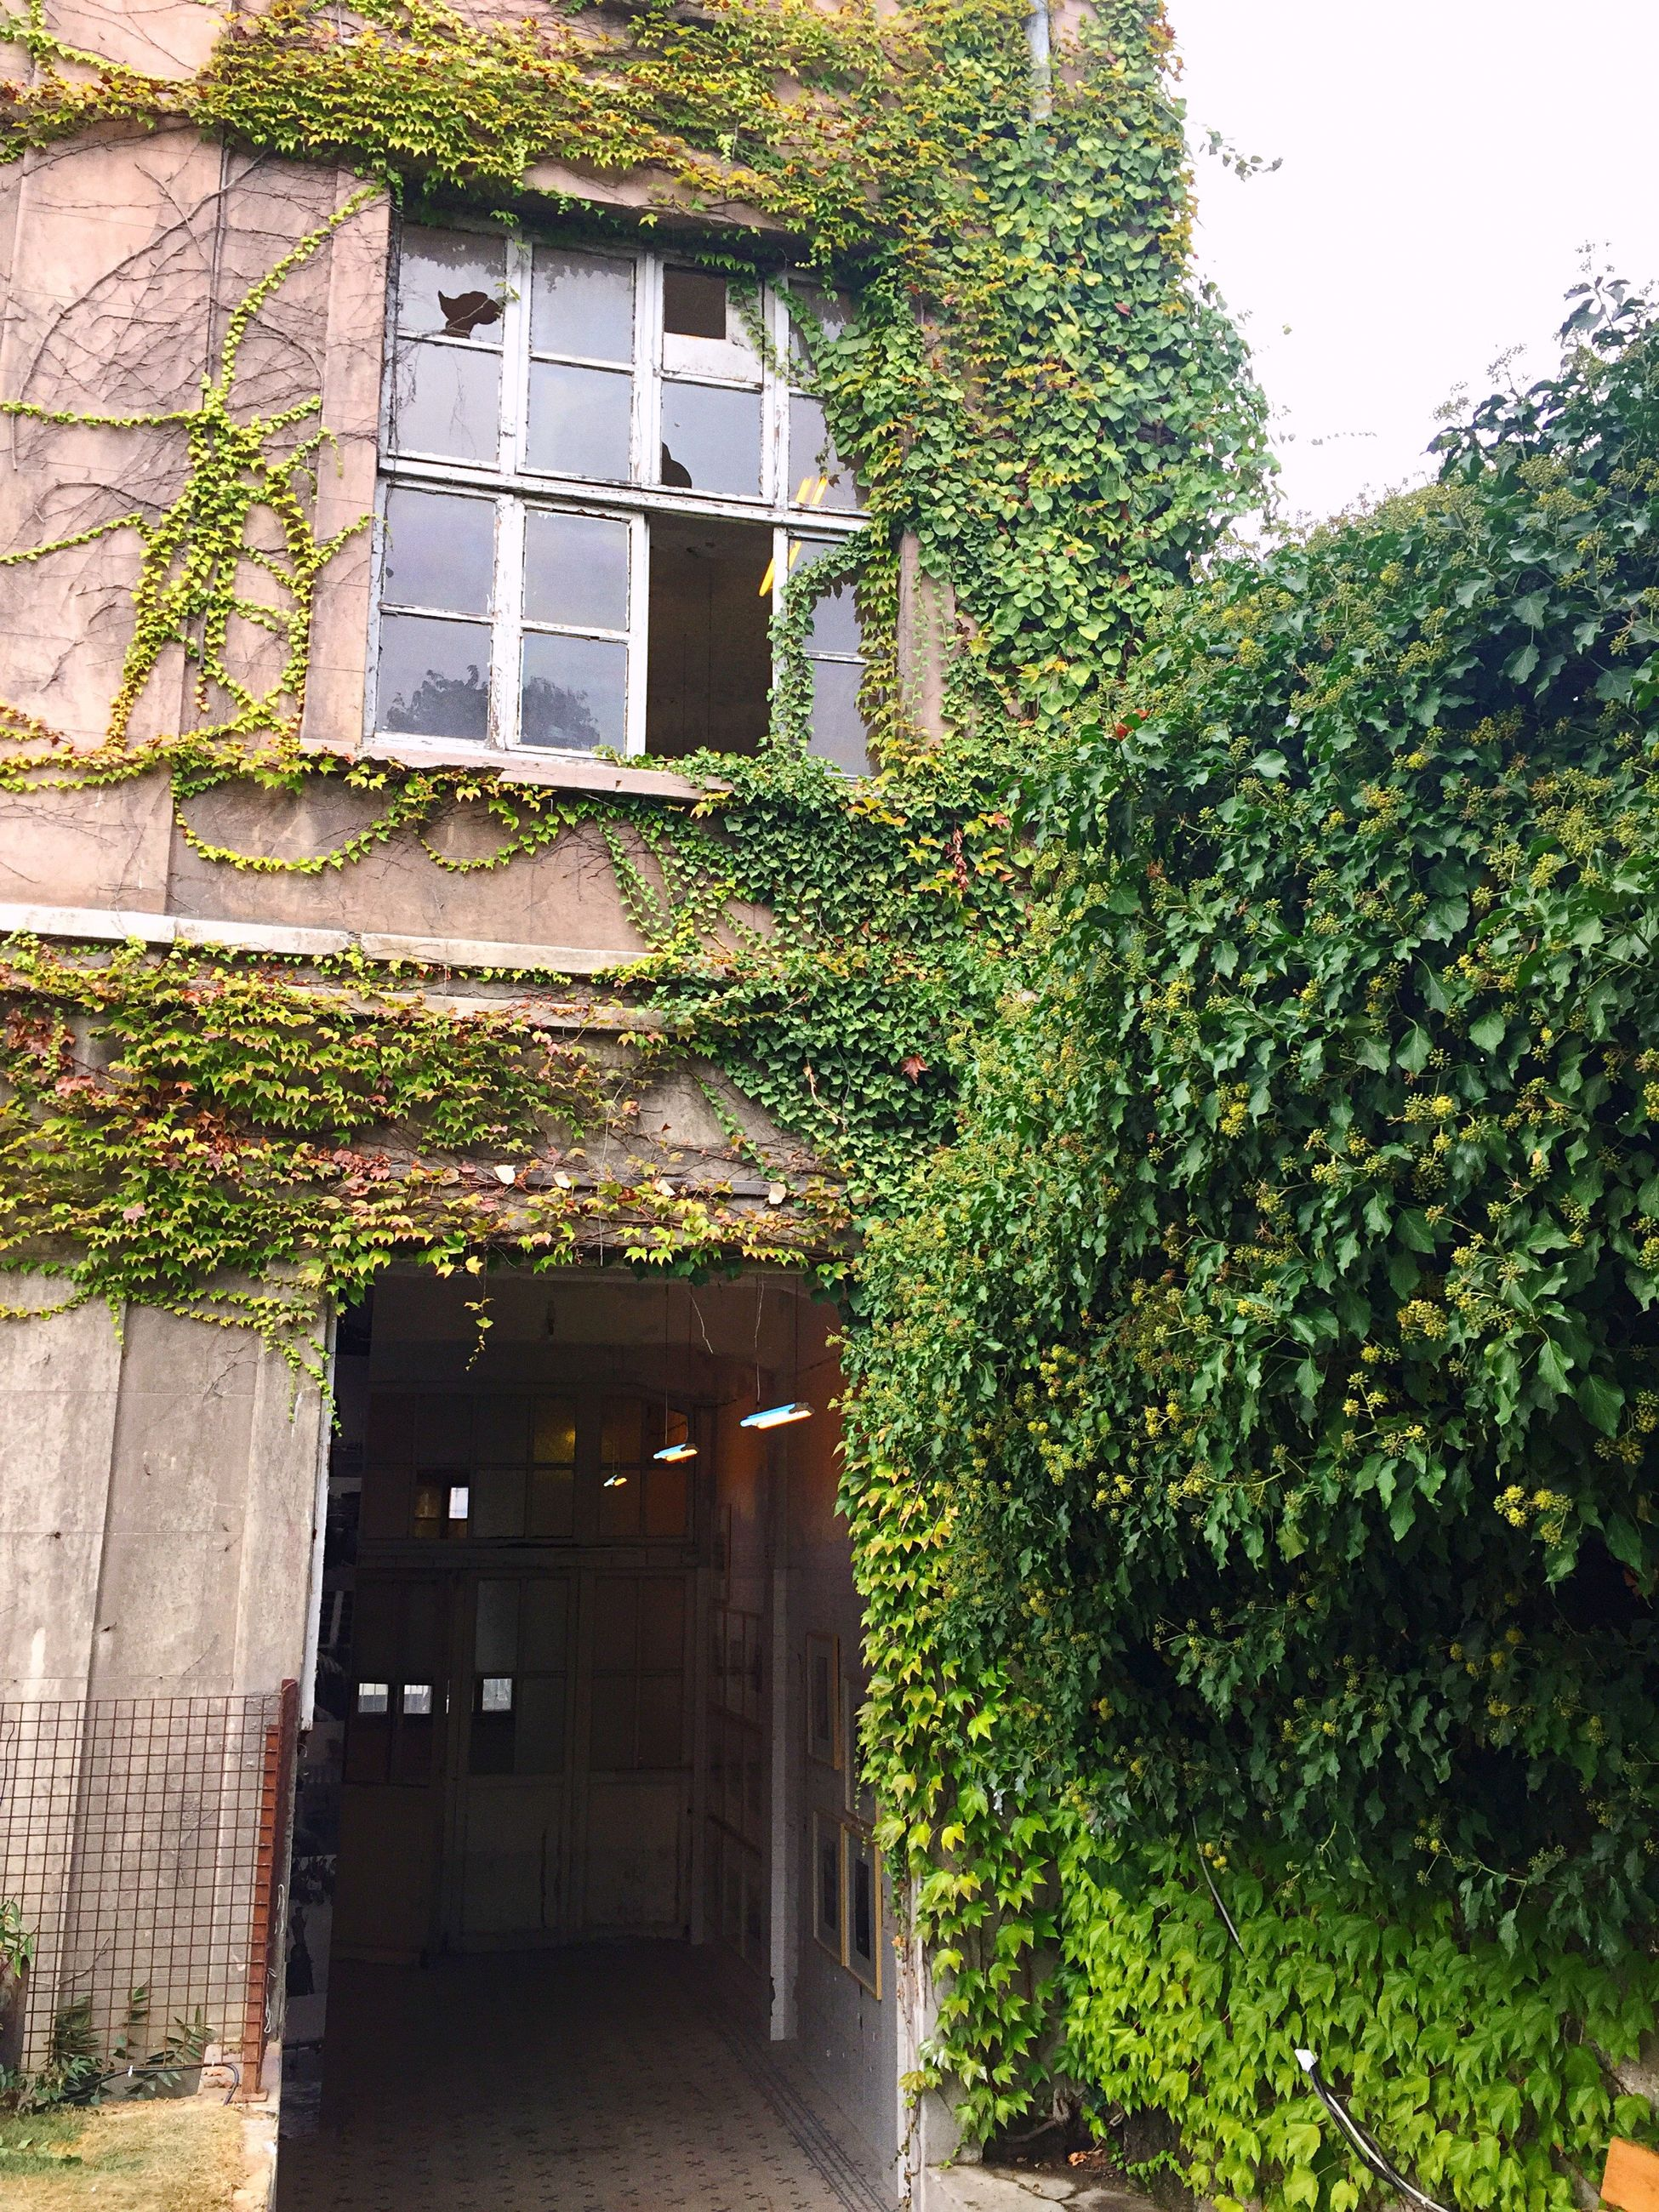 architecture, built structure, building exterior, window, growth, plant, ivy, tree, low angle view, green color, house, creeper plant, creeper, outdoors, day, overgrown, green, growing, no people